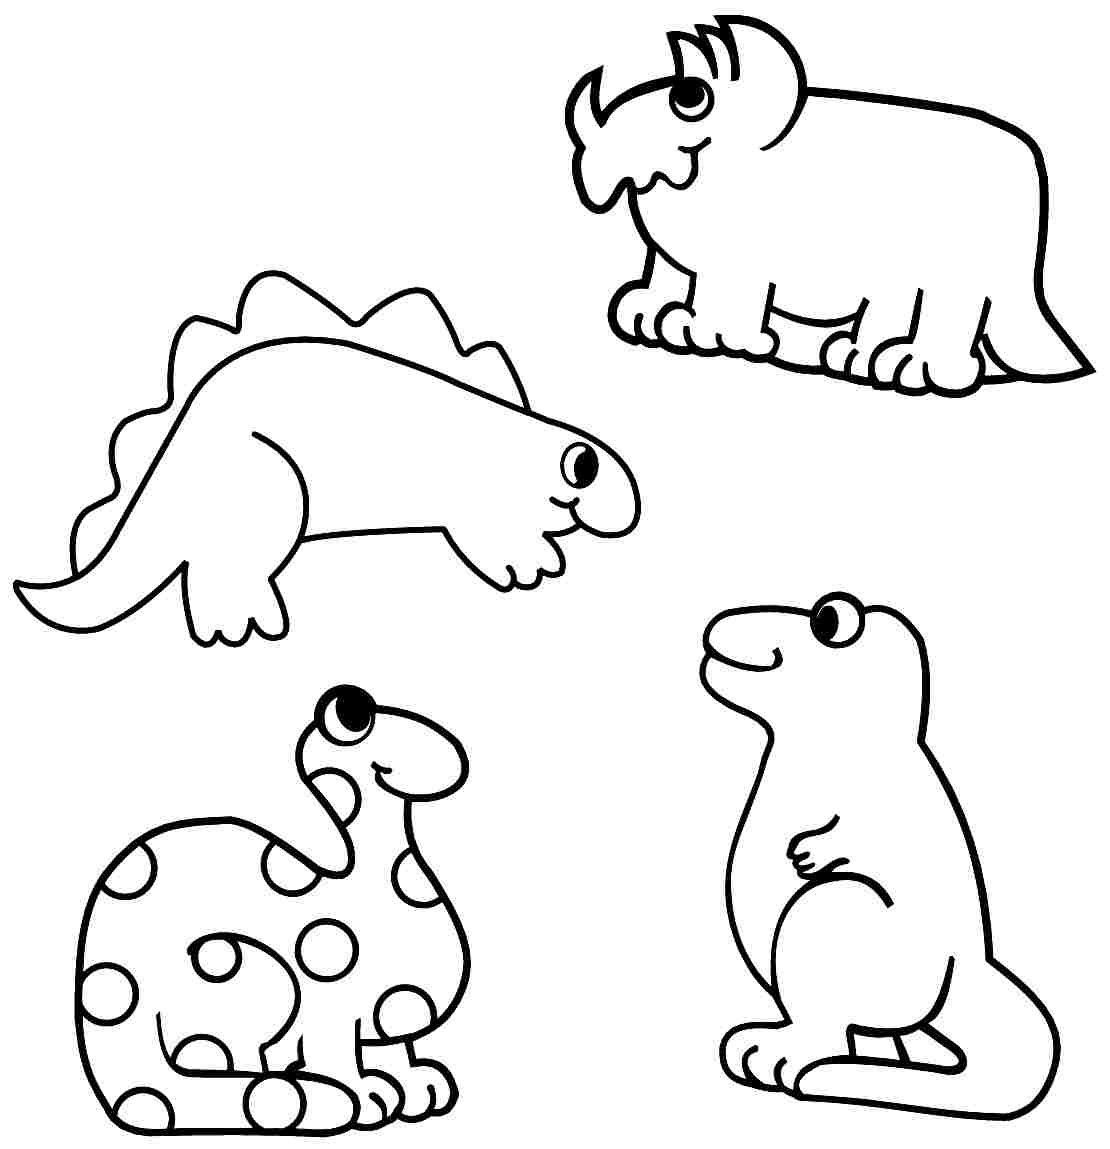 1110x1149 Dinosaur Coloring Pages Preschool Dinosaur Coloring Pages